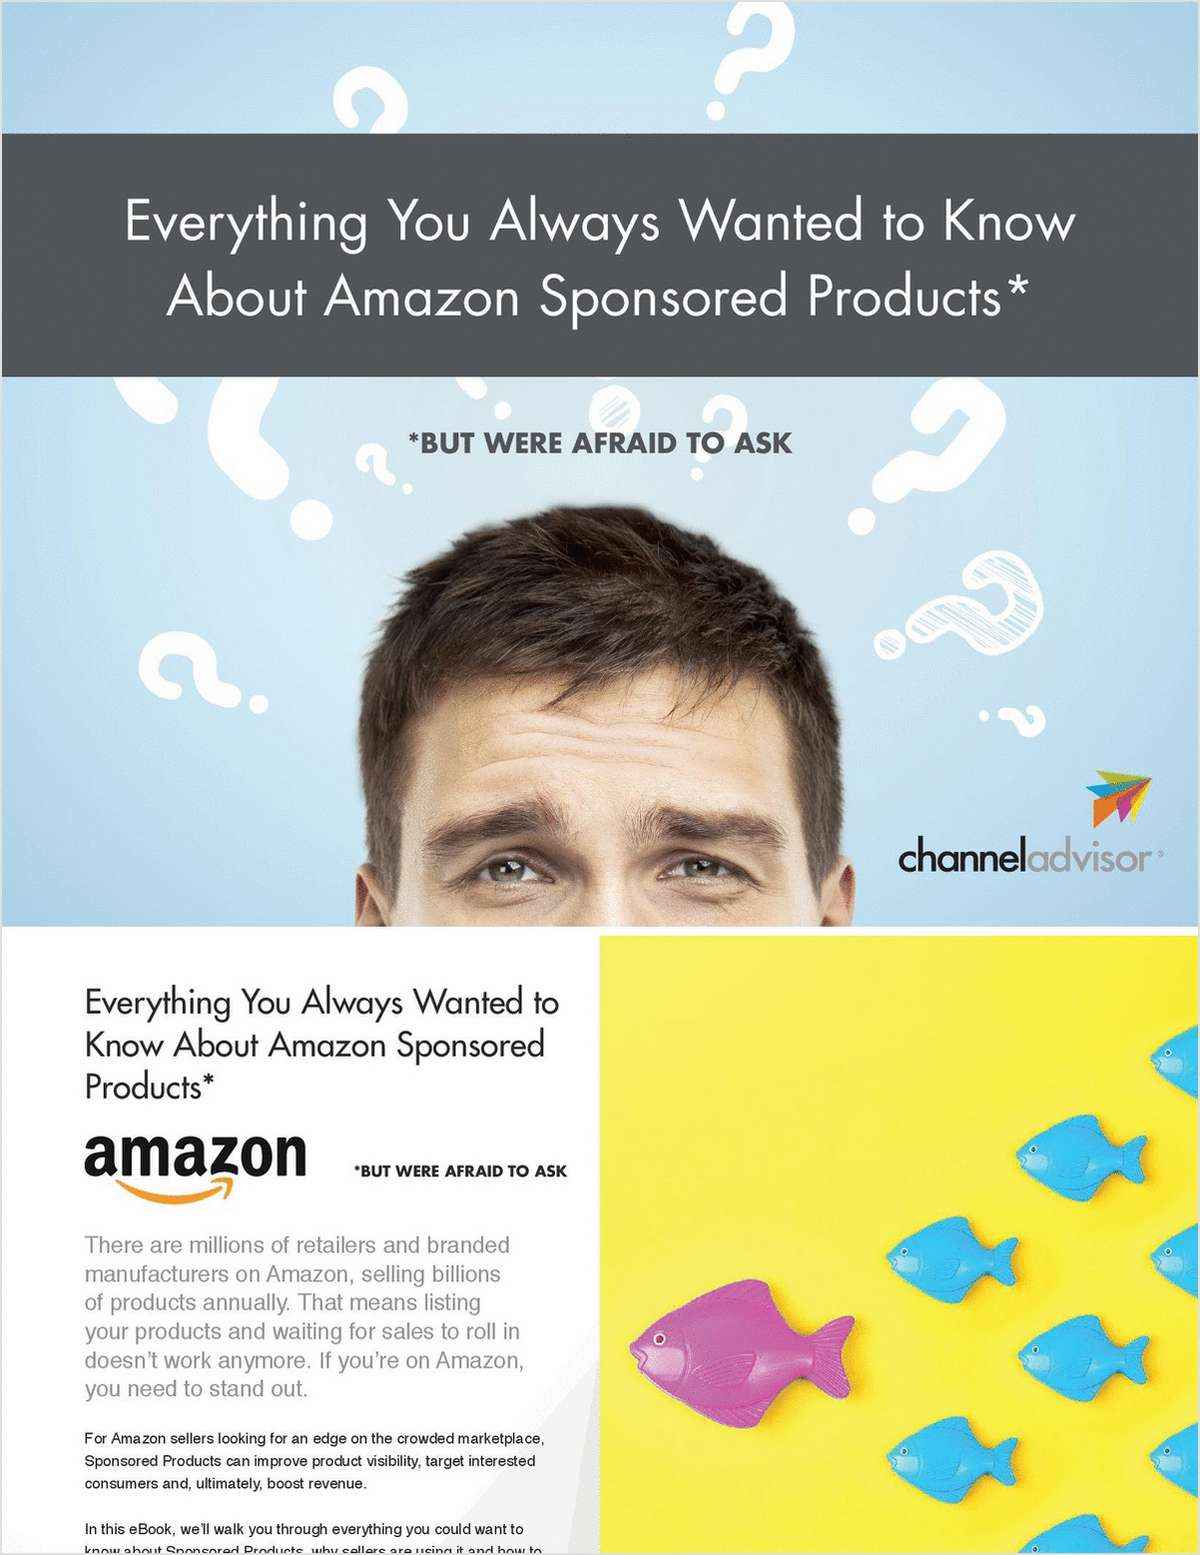 Everything You Always Wanted to Know About Amazon Sponsored Products